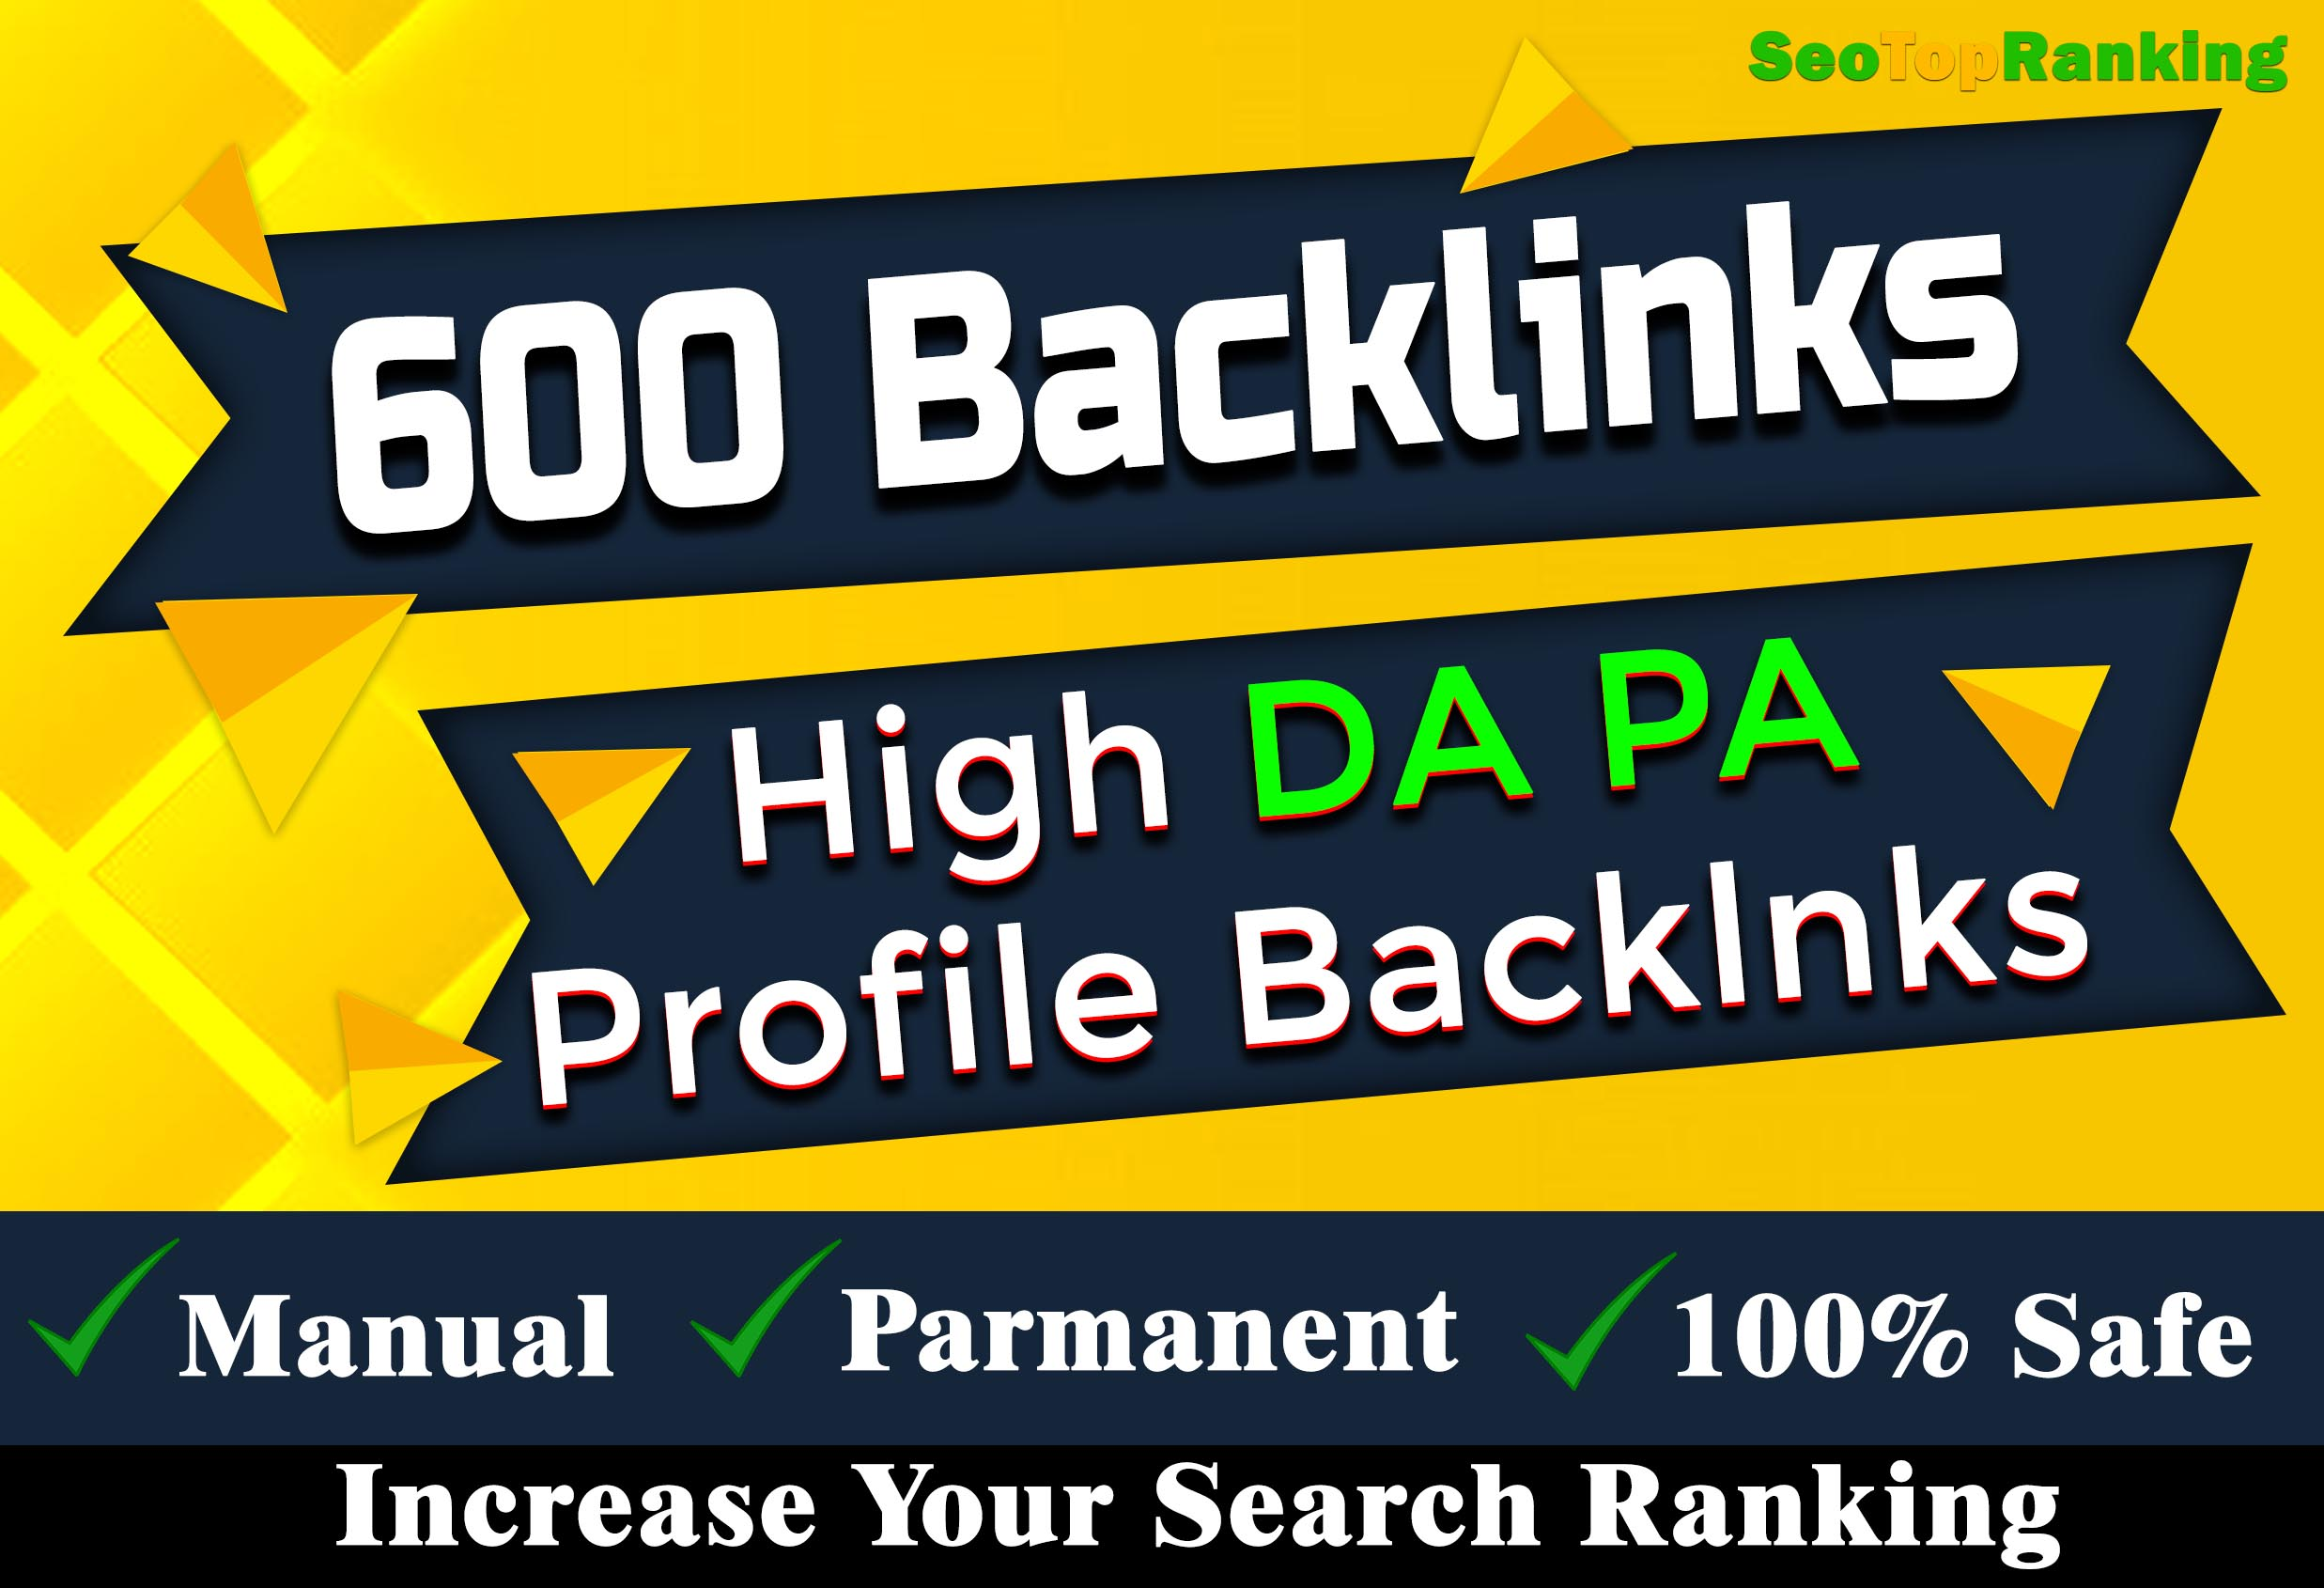 Manually 600 quality full profile backlinks DA 80+ SEO link building Service